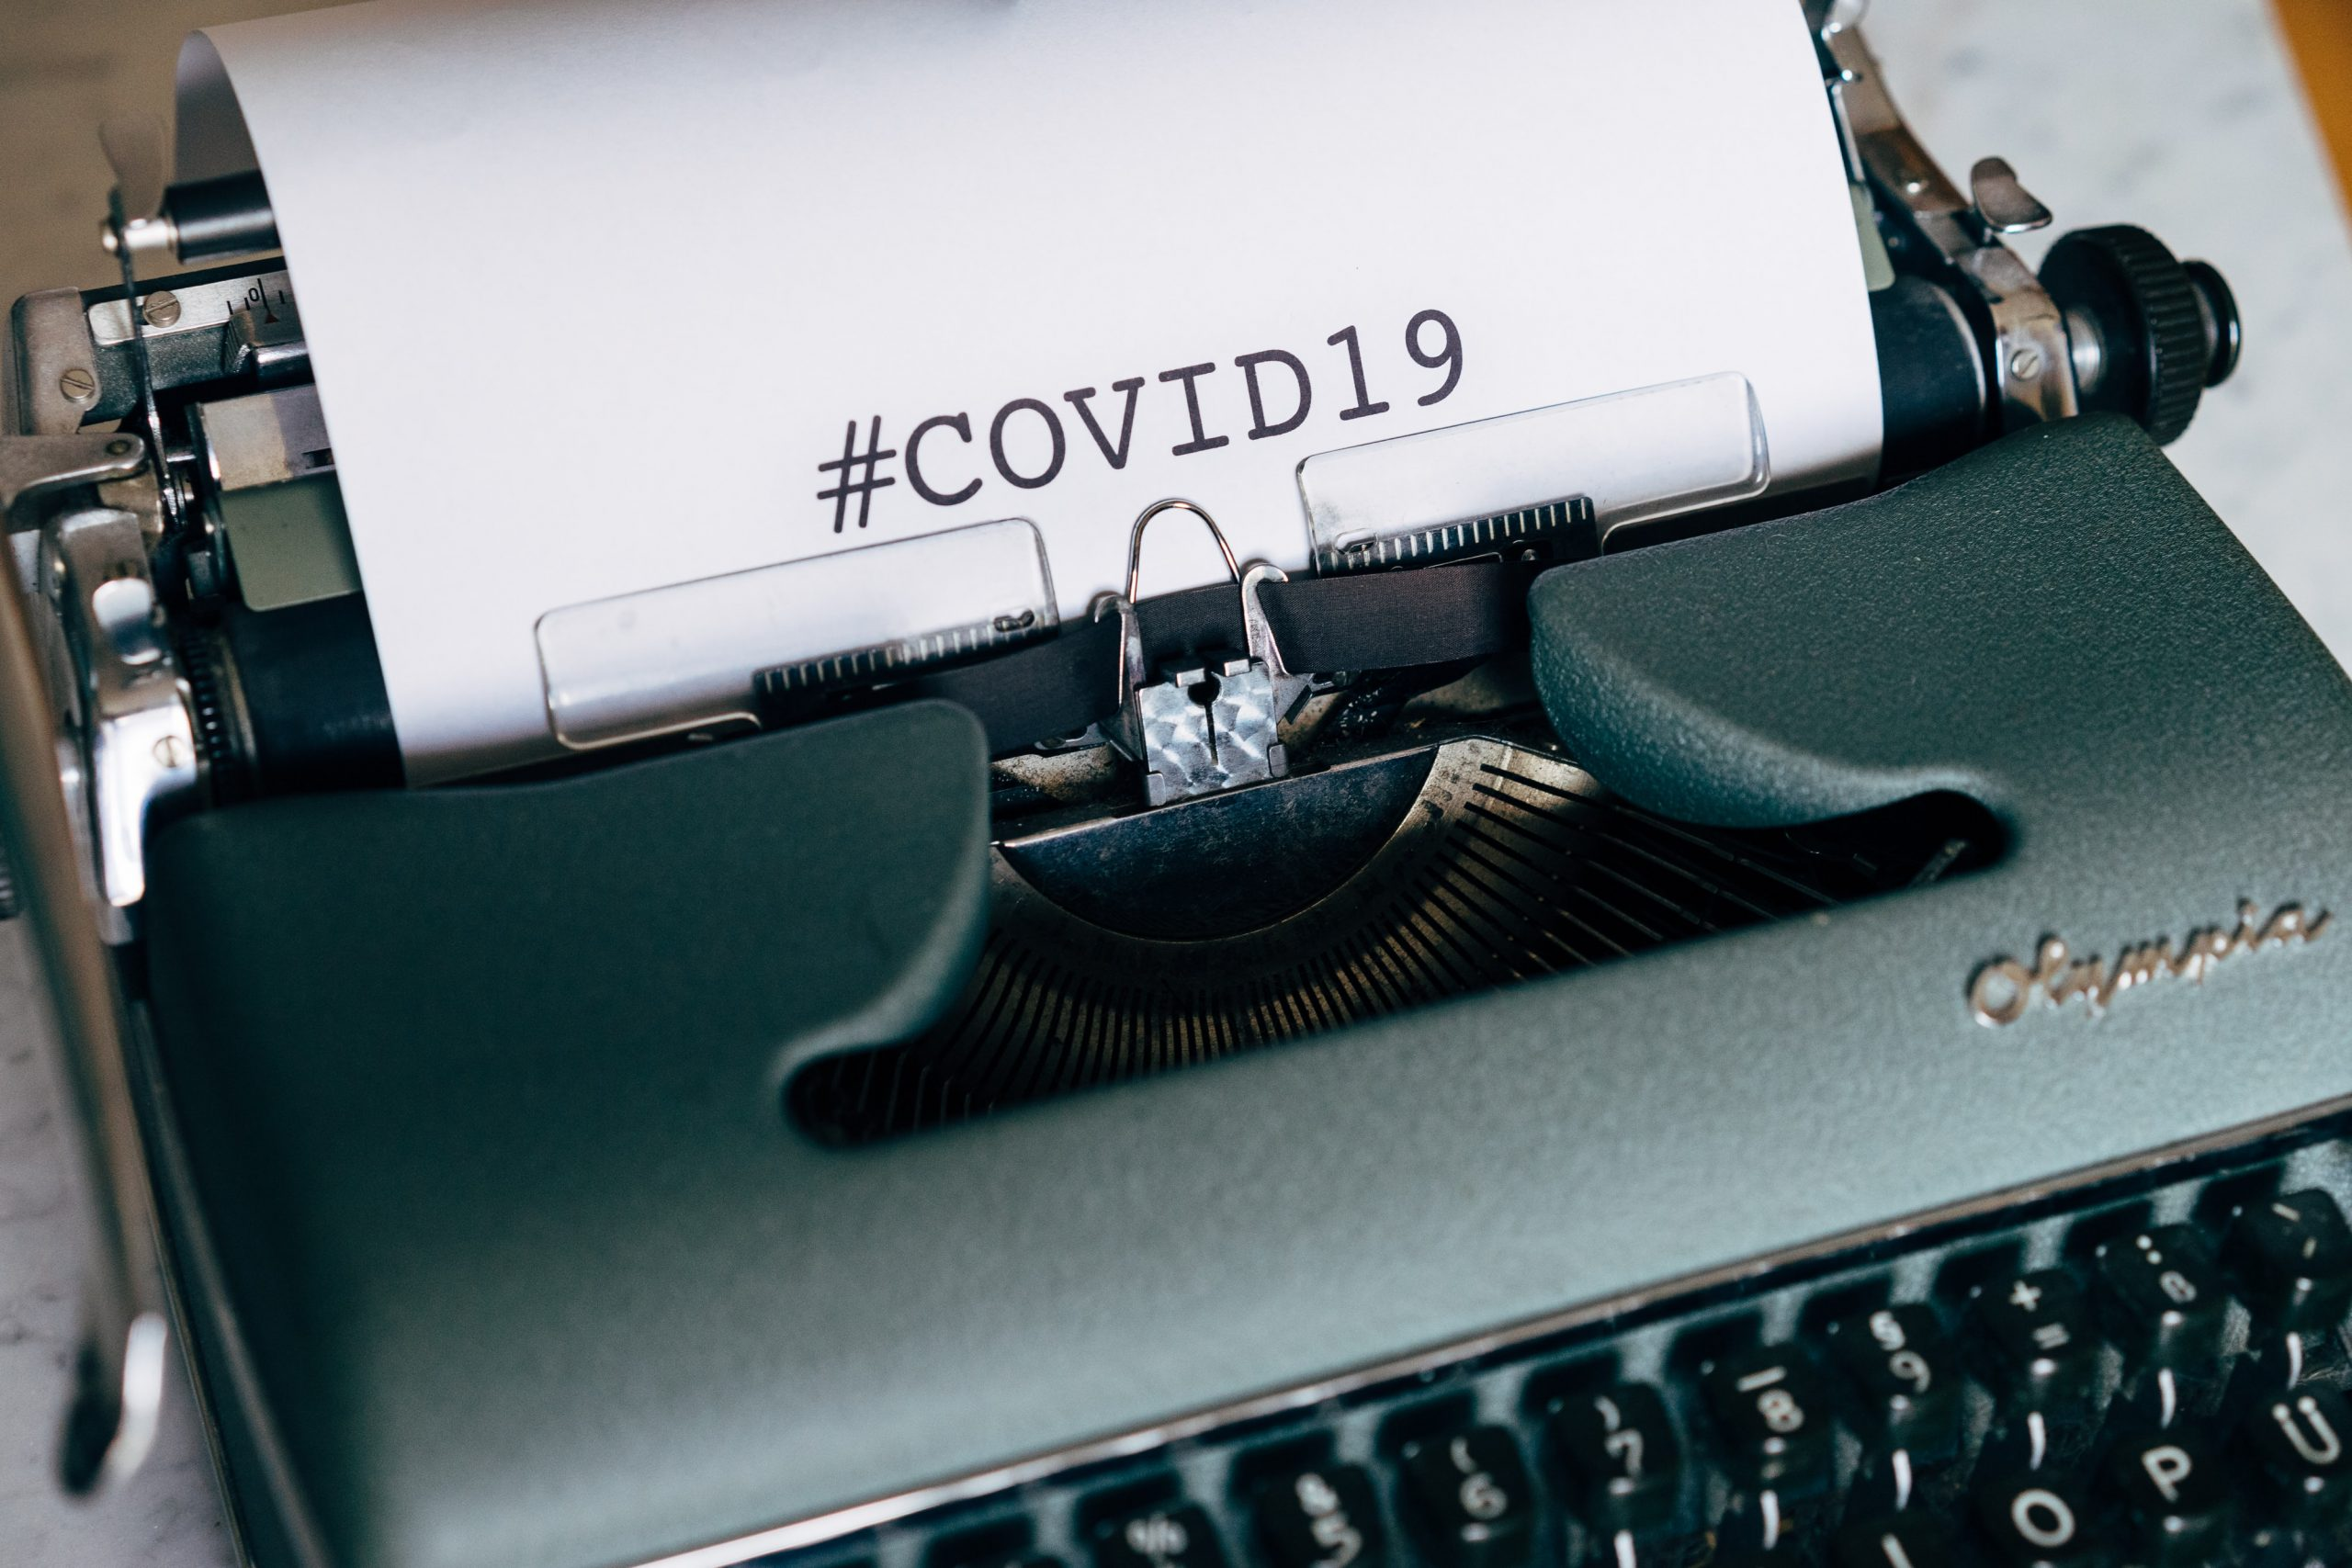 What do we know about women and COVID-19 in low- and middle-income countries from the peer-reviewed literature?